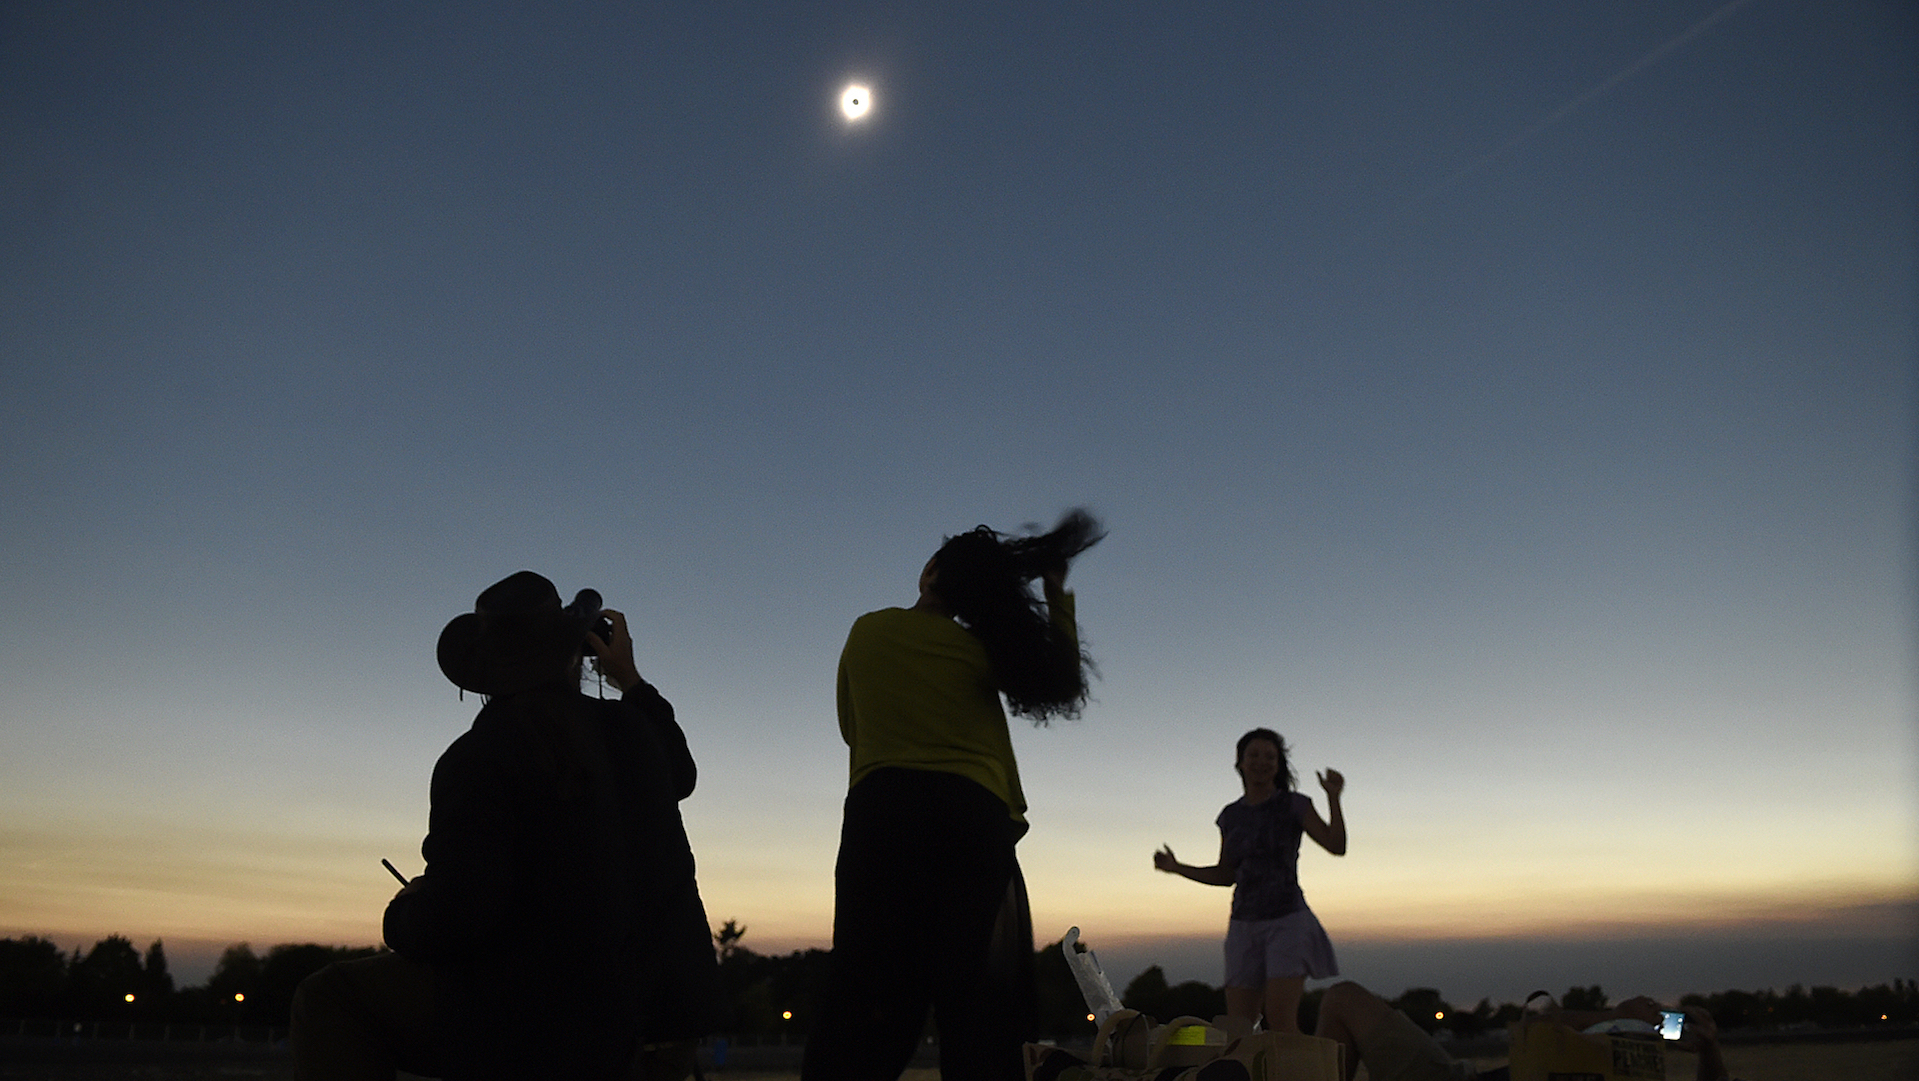 'We are all just mind-boggled:' scenes from the total solar eclipse of 2017